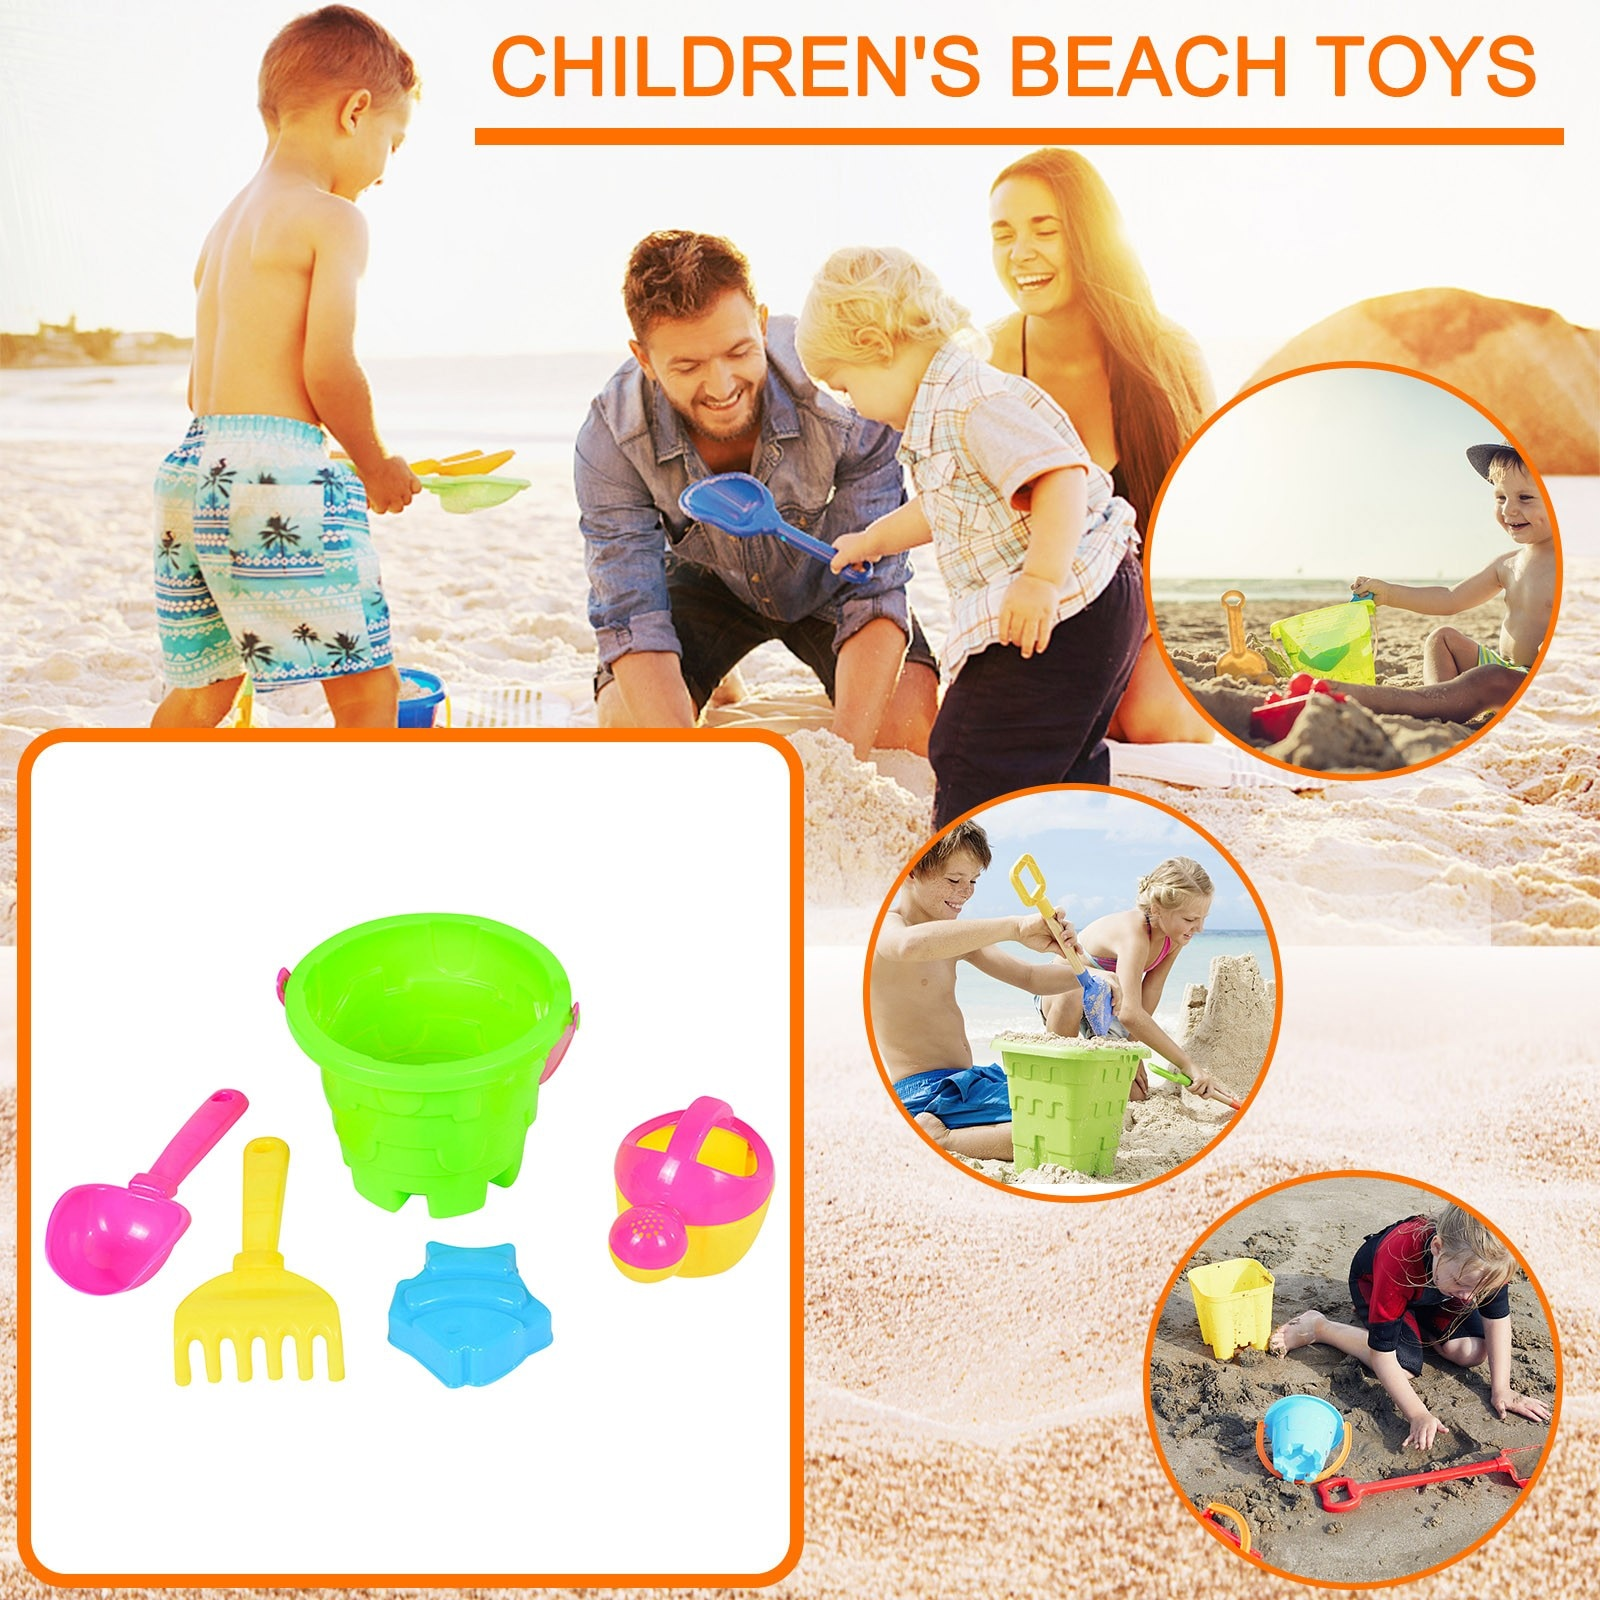 5 Piece Beach Toys Sandbox Digging Sand Set Sand Play Sandpit Toy Summer Outdoor Toy Beach Big Hourglass Gardening Toys Gift #5 starry sky sand beach toy 18 piece sand set magic space clay sand puzzle power toys